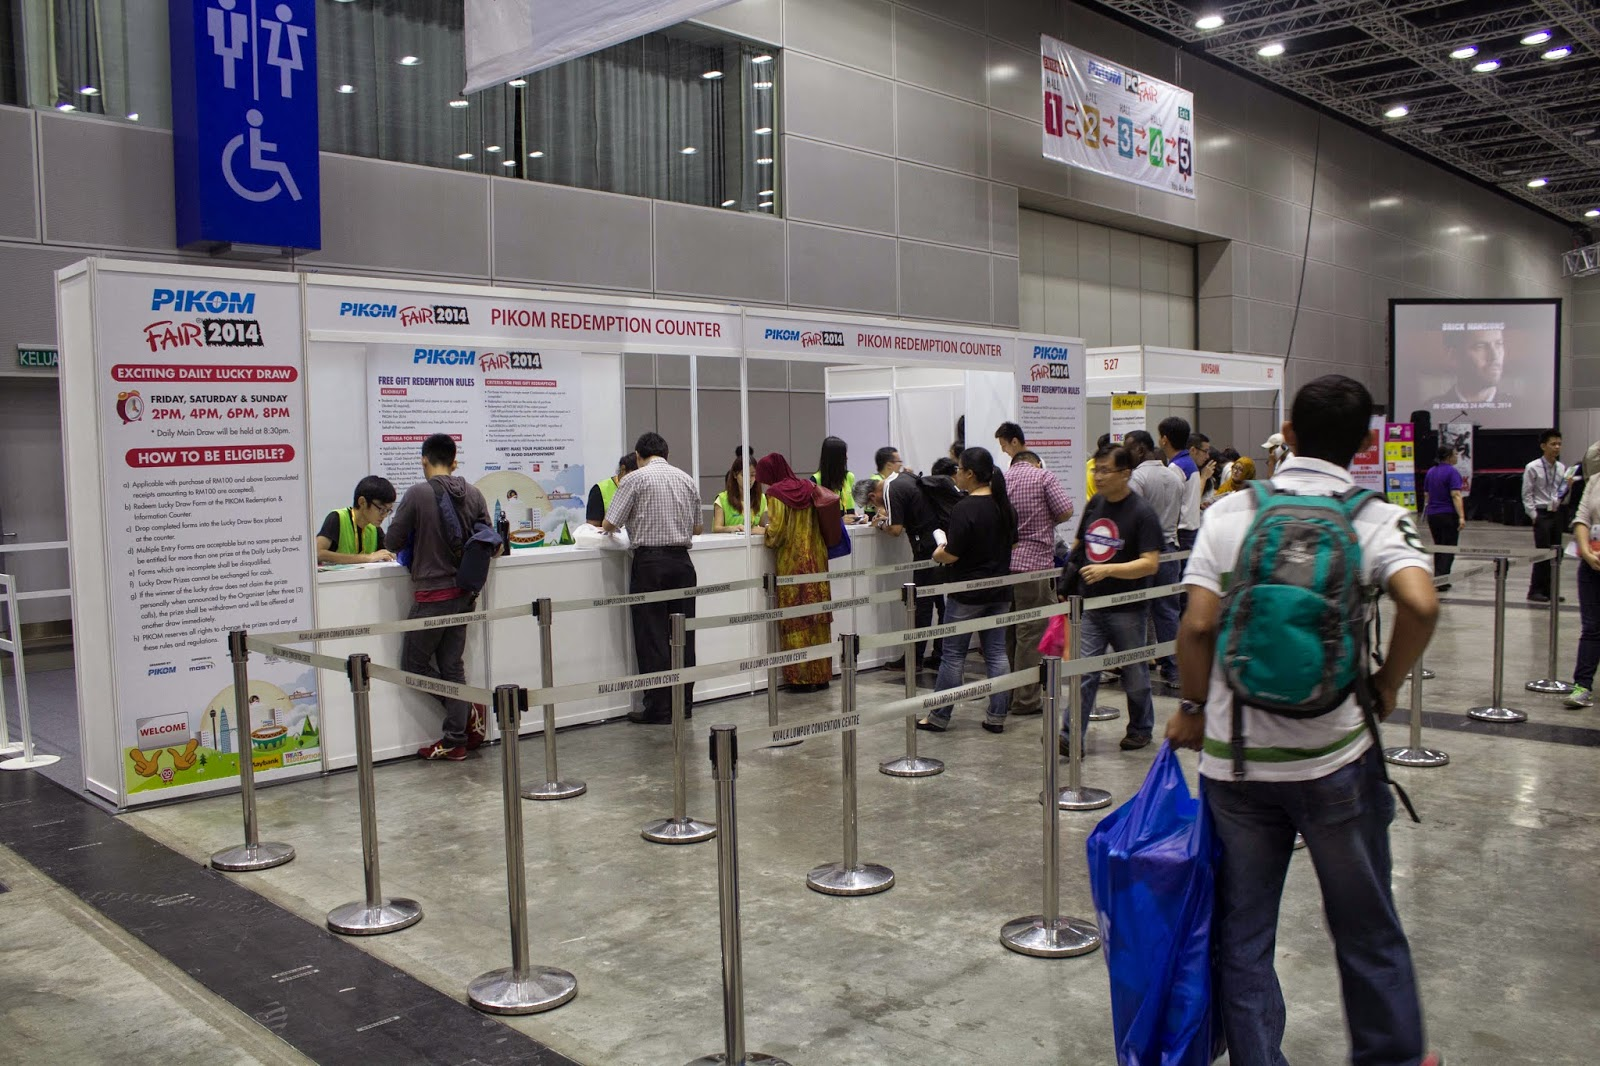 Coverage of PIKOM PC Fair 2014 @ Kuala Lumpur Convention Center 406